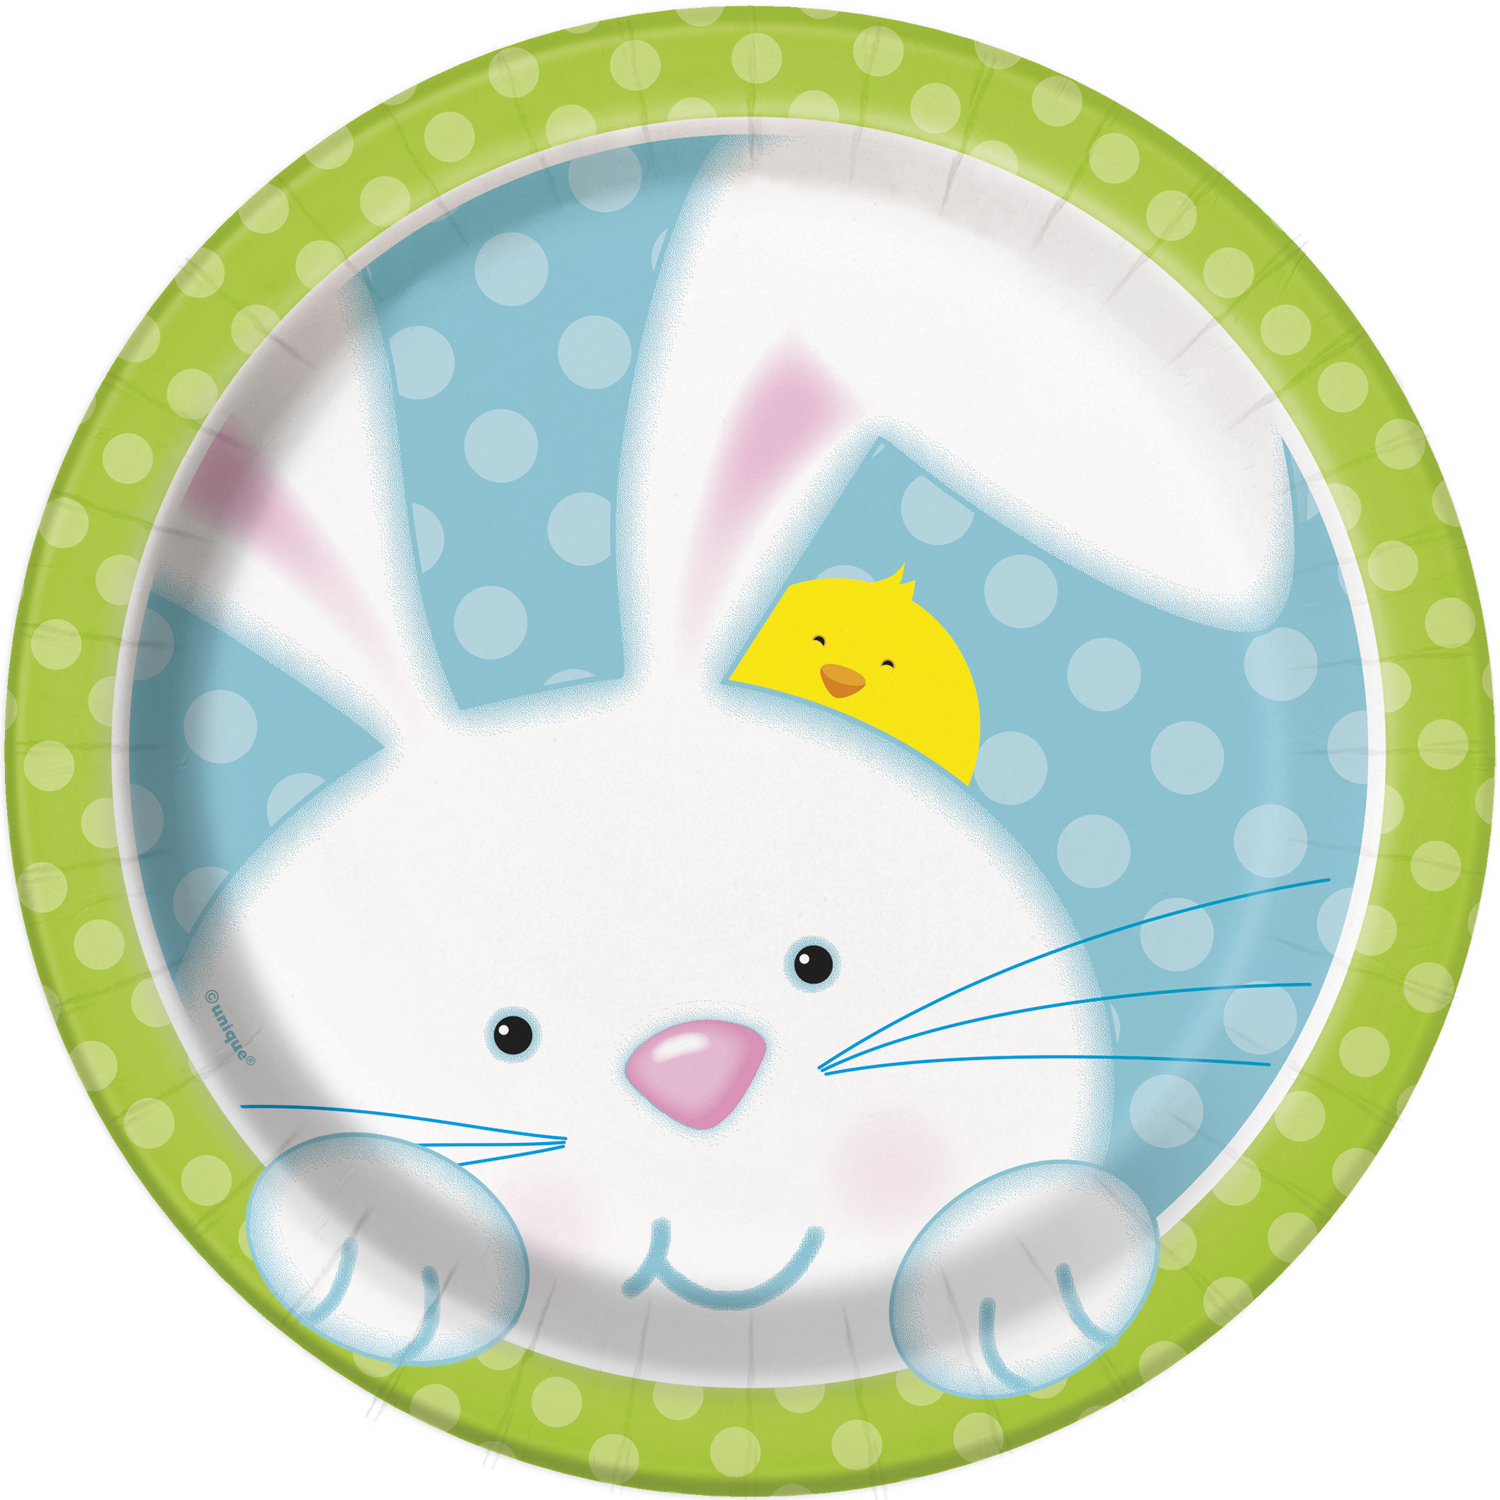 8 x Easter Bunny Paper Party Plates 18cm Dessert Kids Spring Easter Party Plate  sc 1 st  eBay & 8 x Easter Bunny Paper Party Plates 18cm Dessert Kids Spring Easter ...